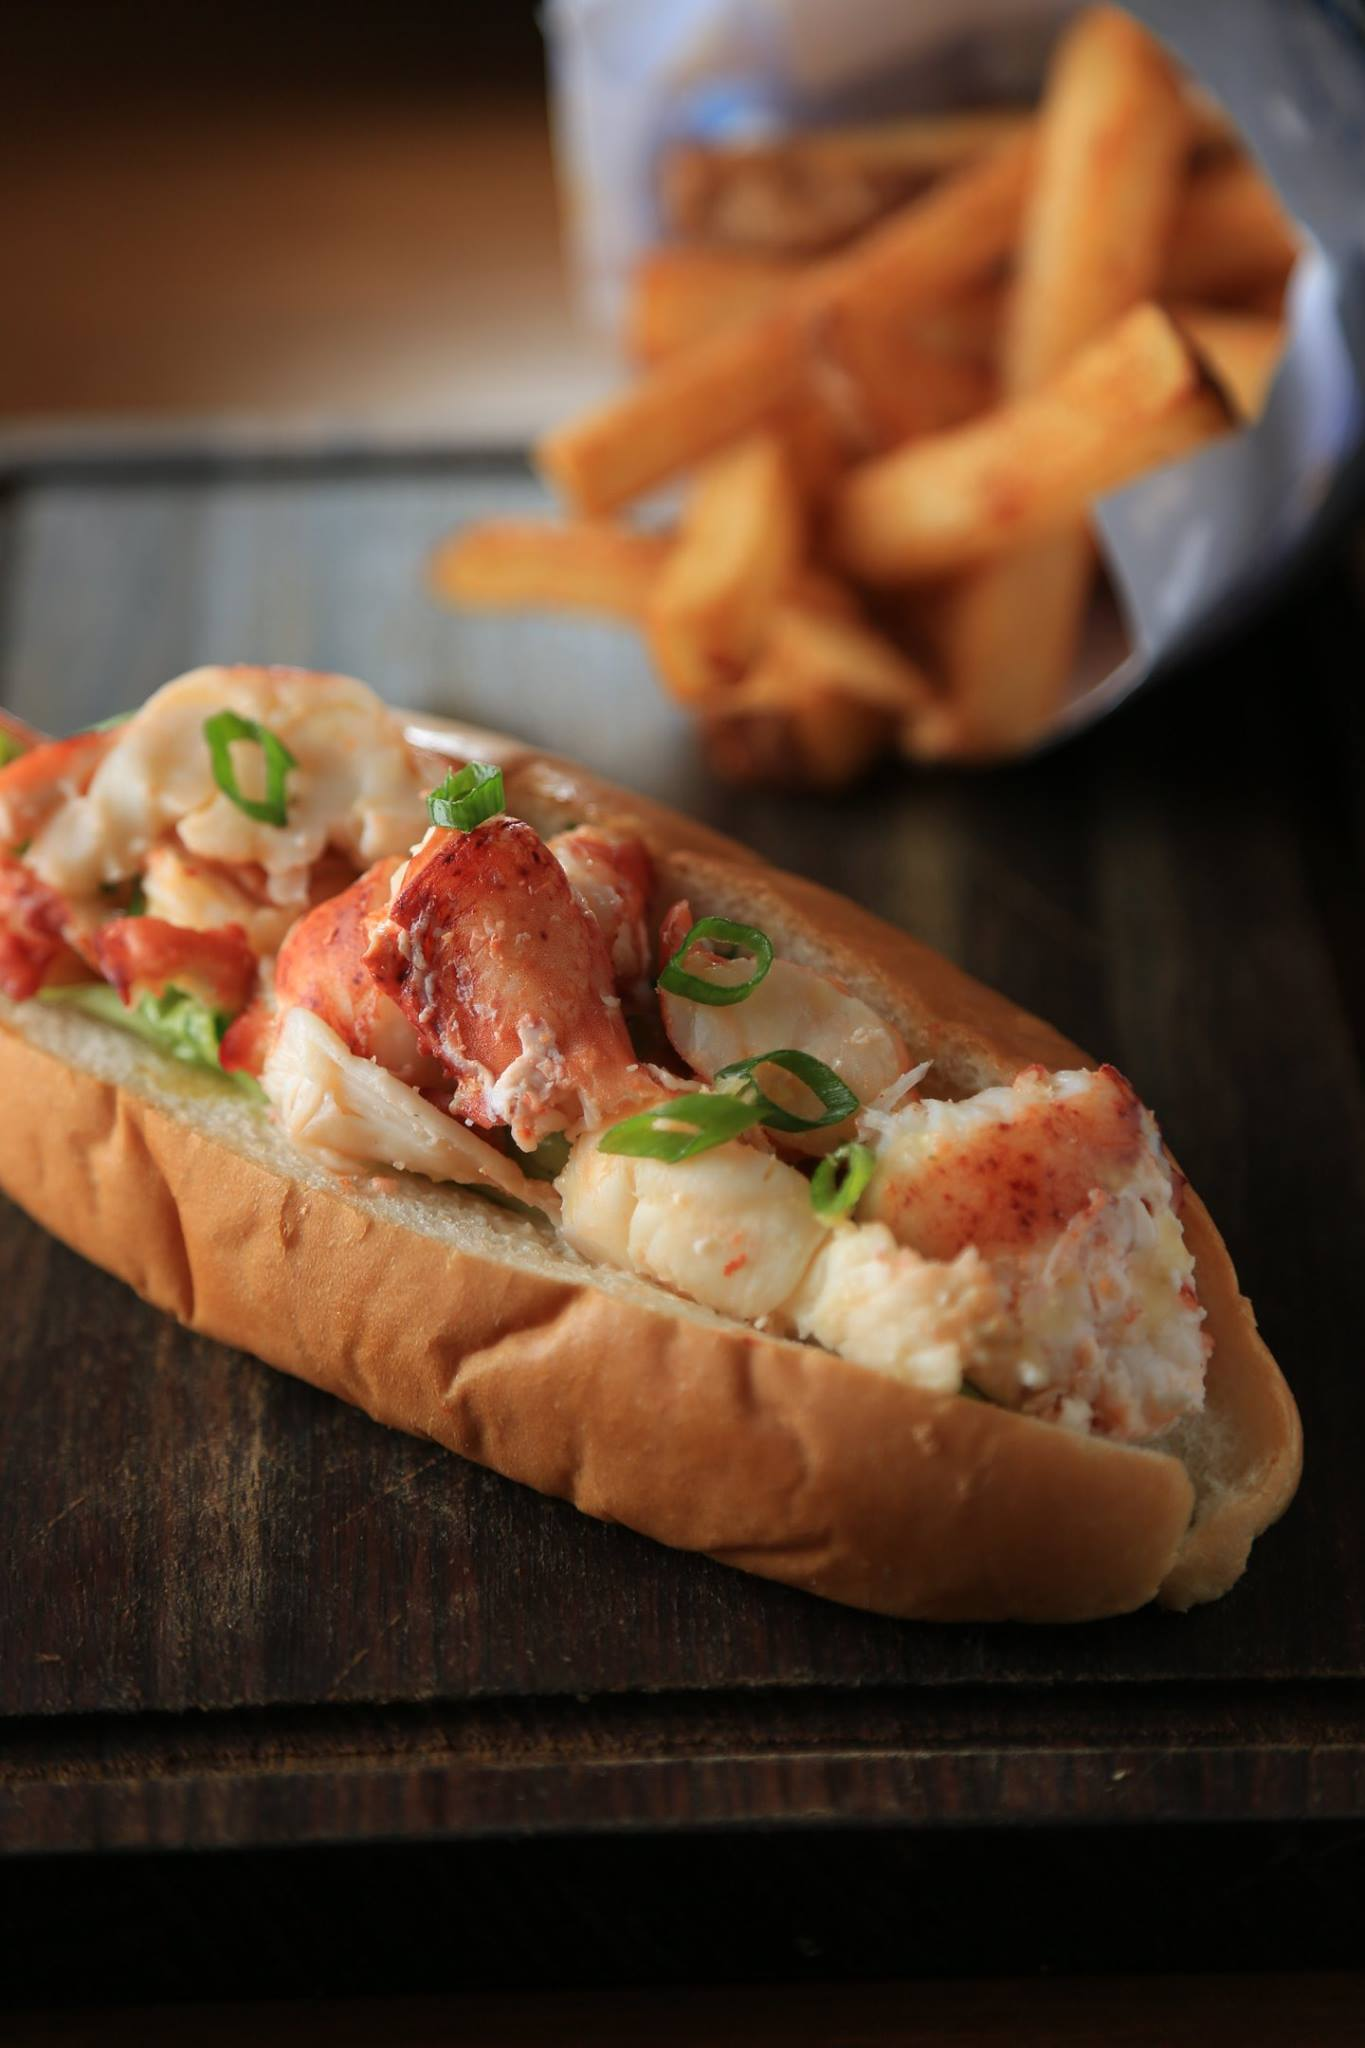 Hong Kong's best lobster rolls – Cull N Pistol